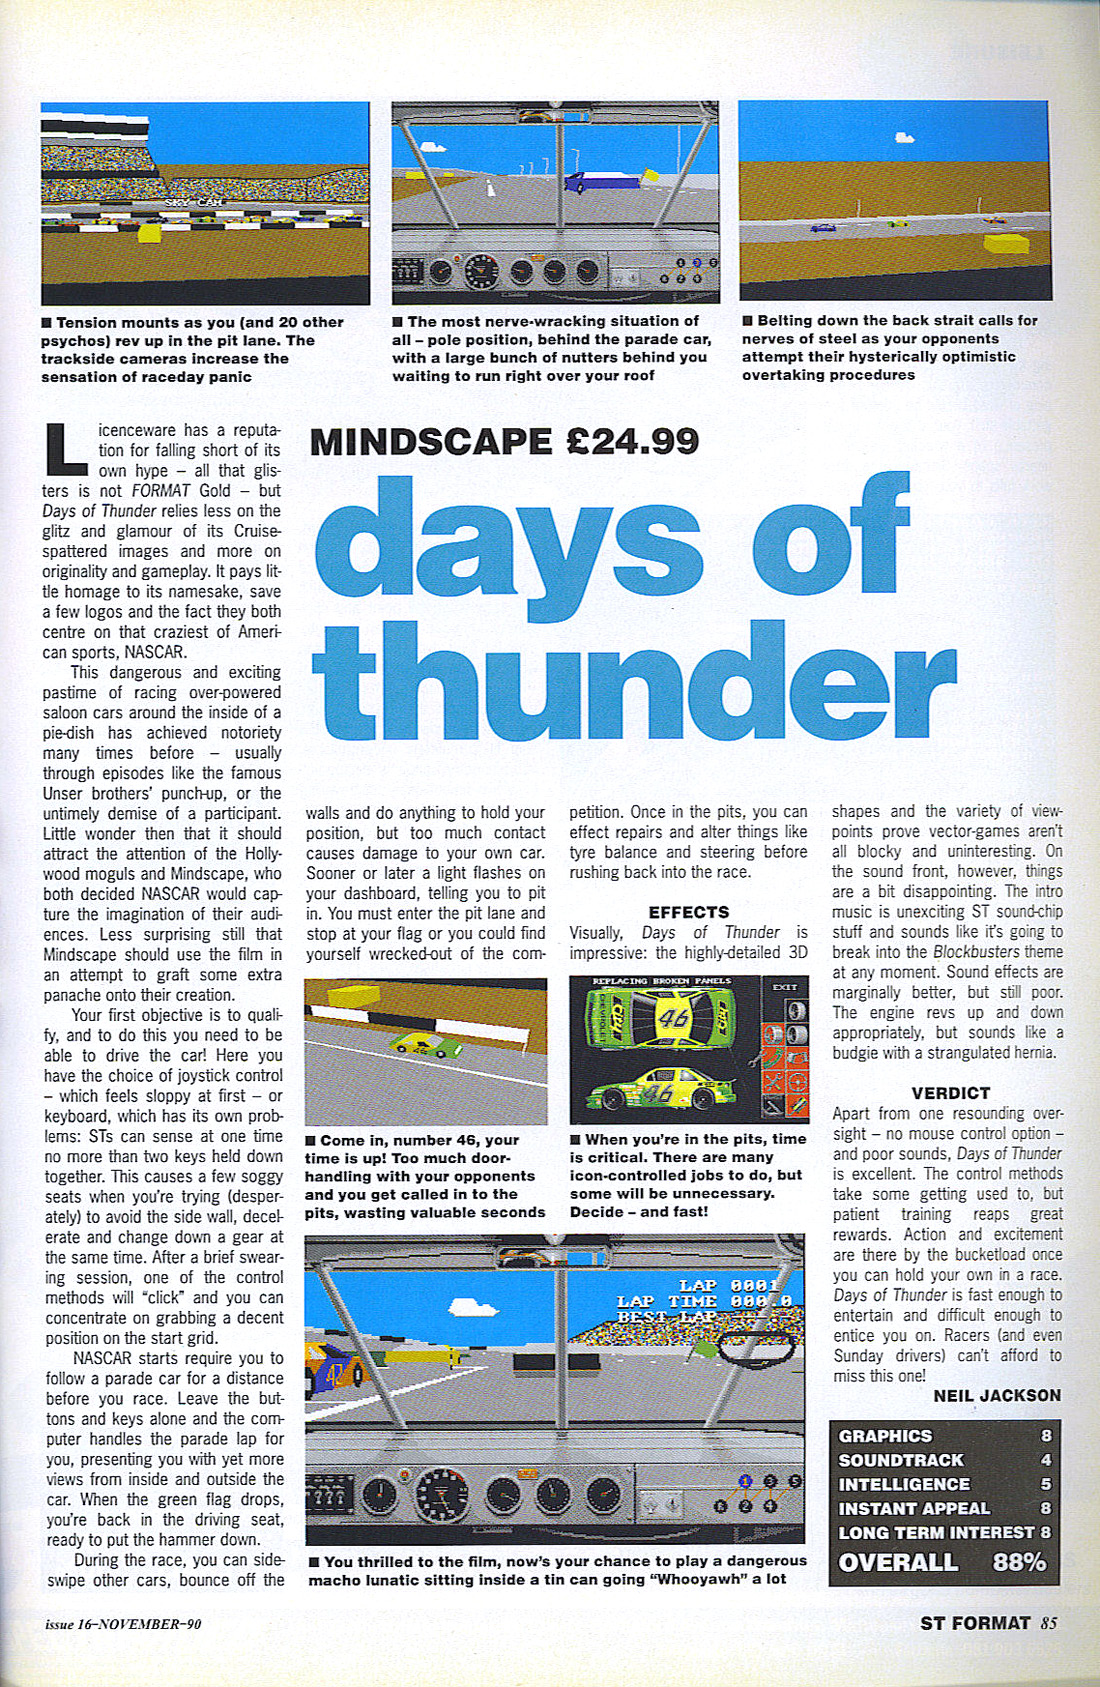 Book / Magazine Reviews - Days of Thunder